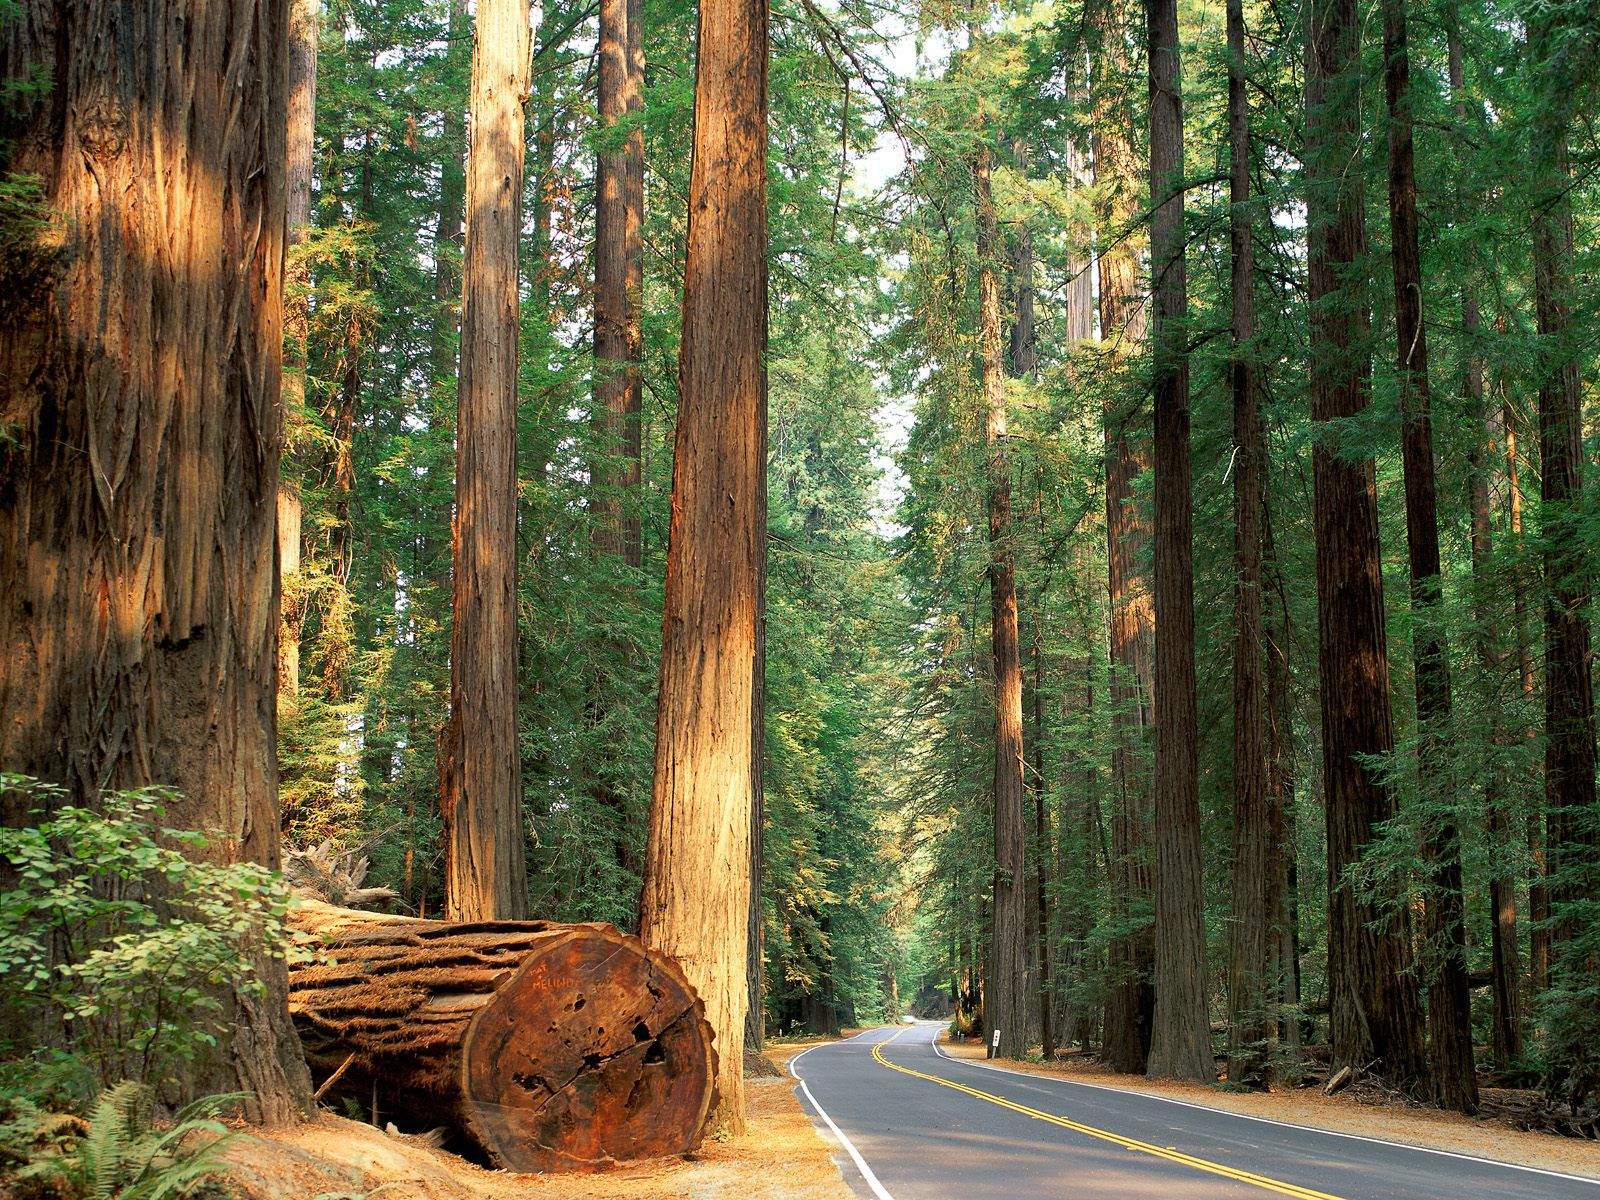 The Ultimate California Road Trip: 19 Places To Stop, Eat, See and Explore! (5)